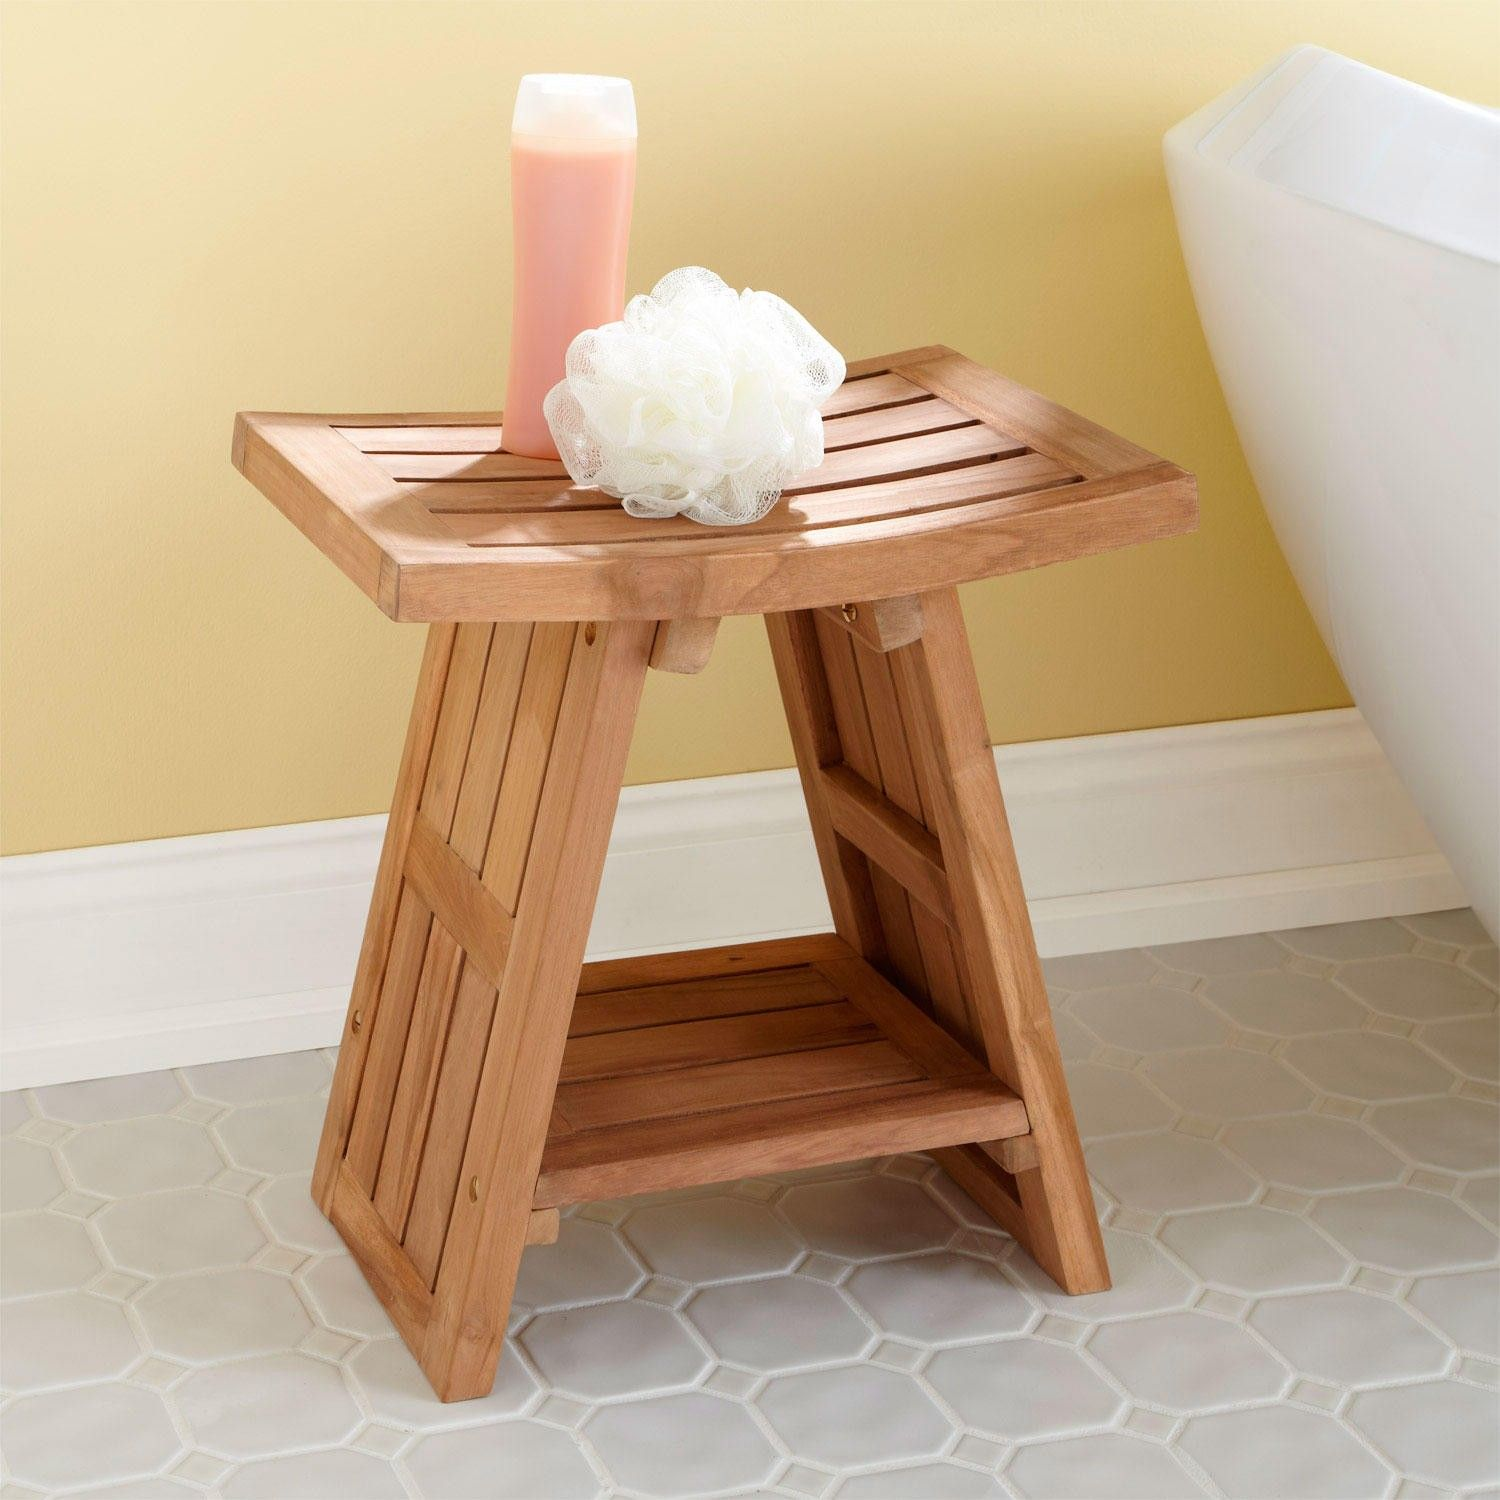 $180 Teak+Asian+Style+Shower+Stool | Bathroom benches | Pinterest ...